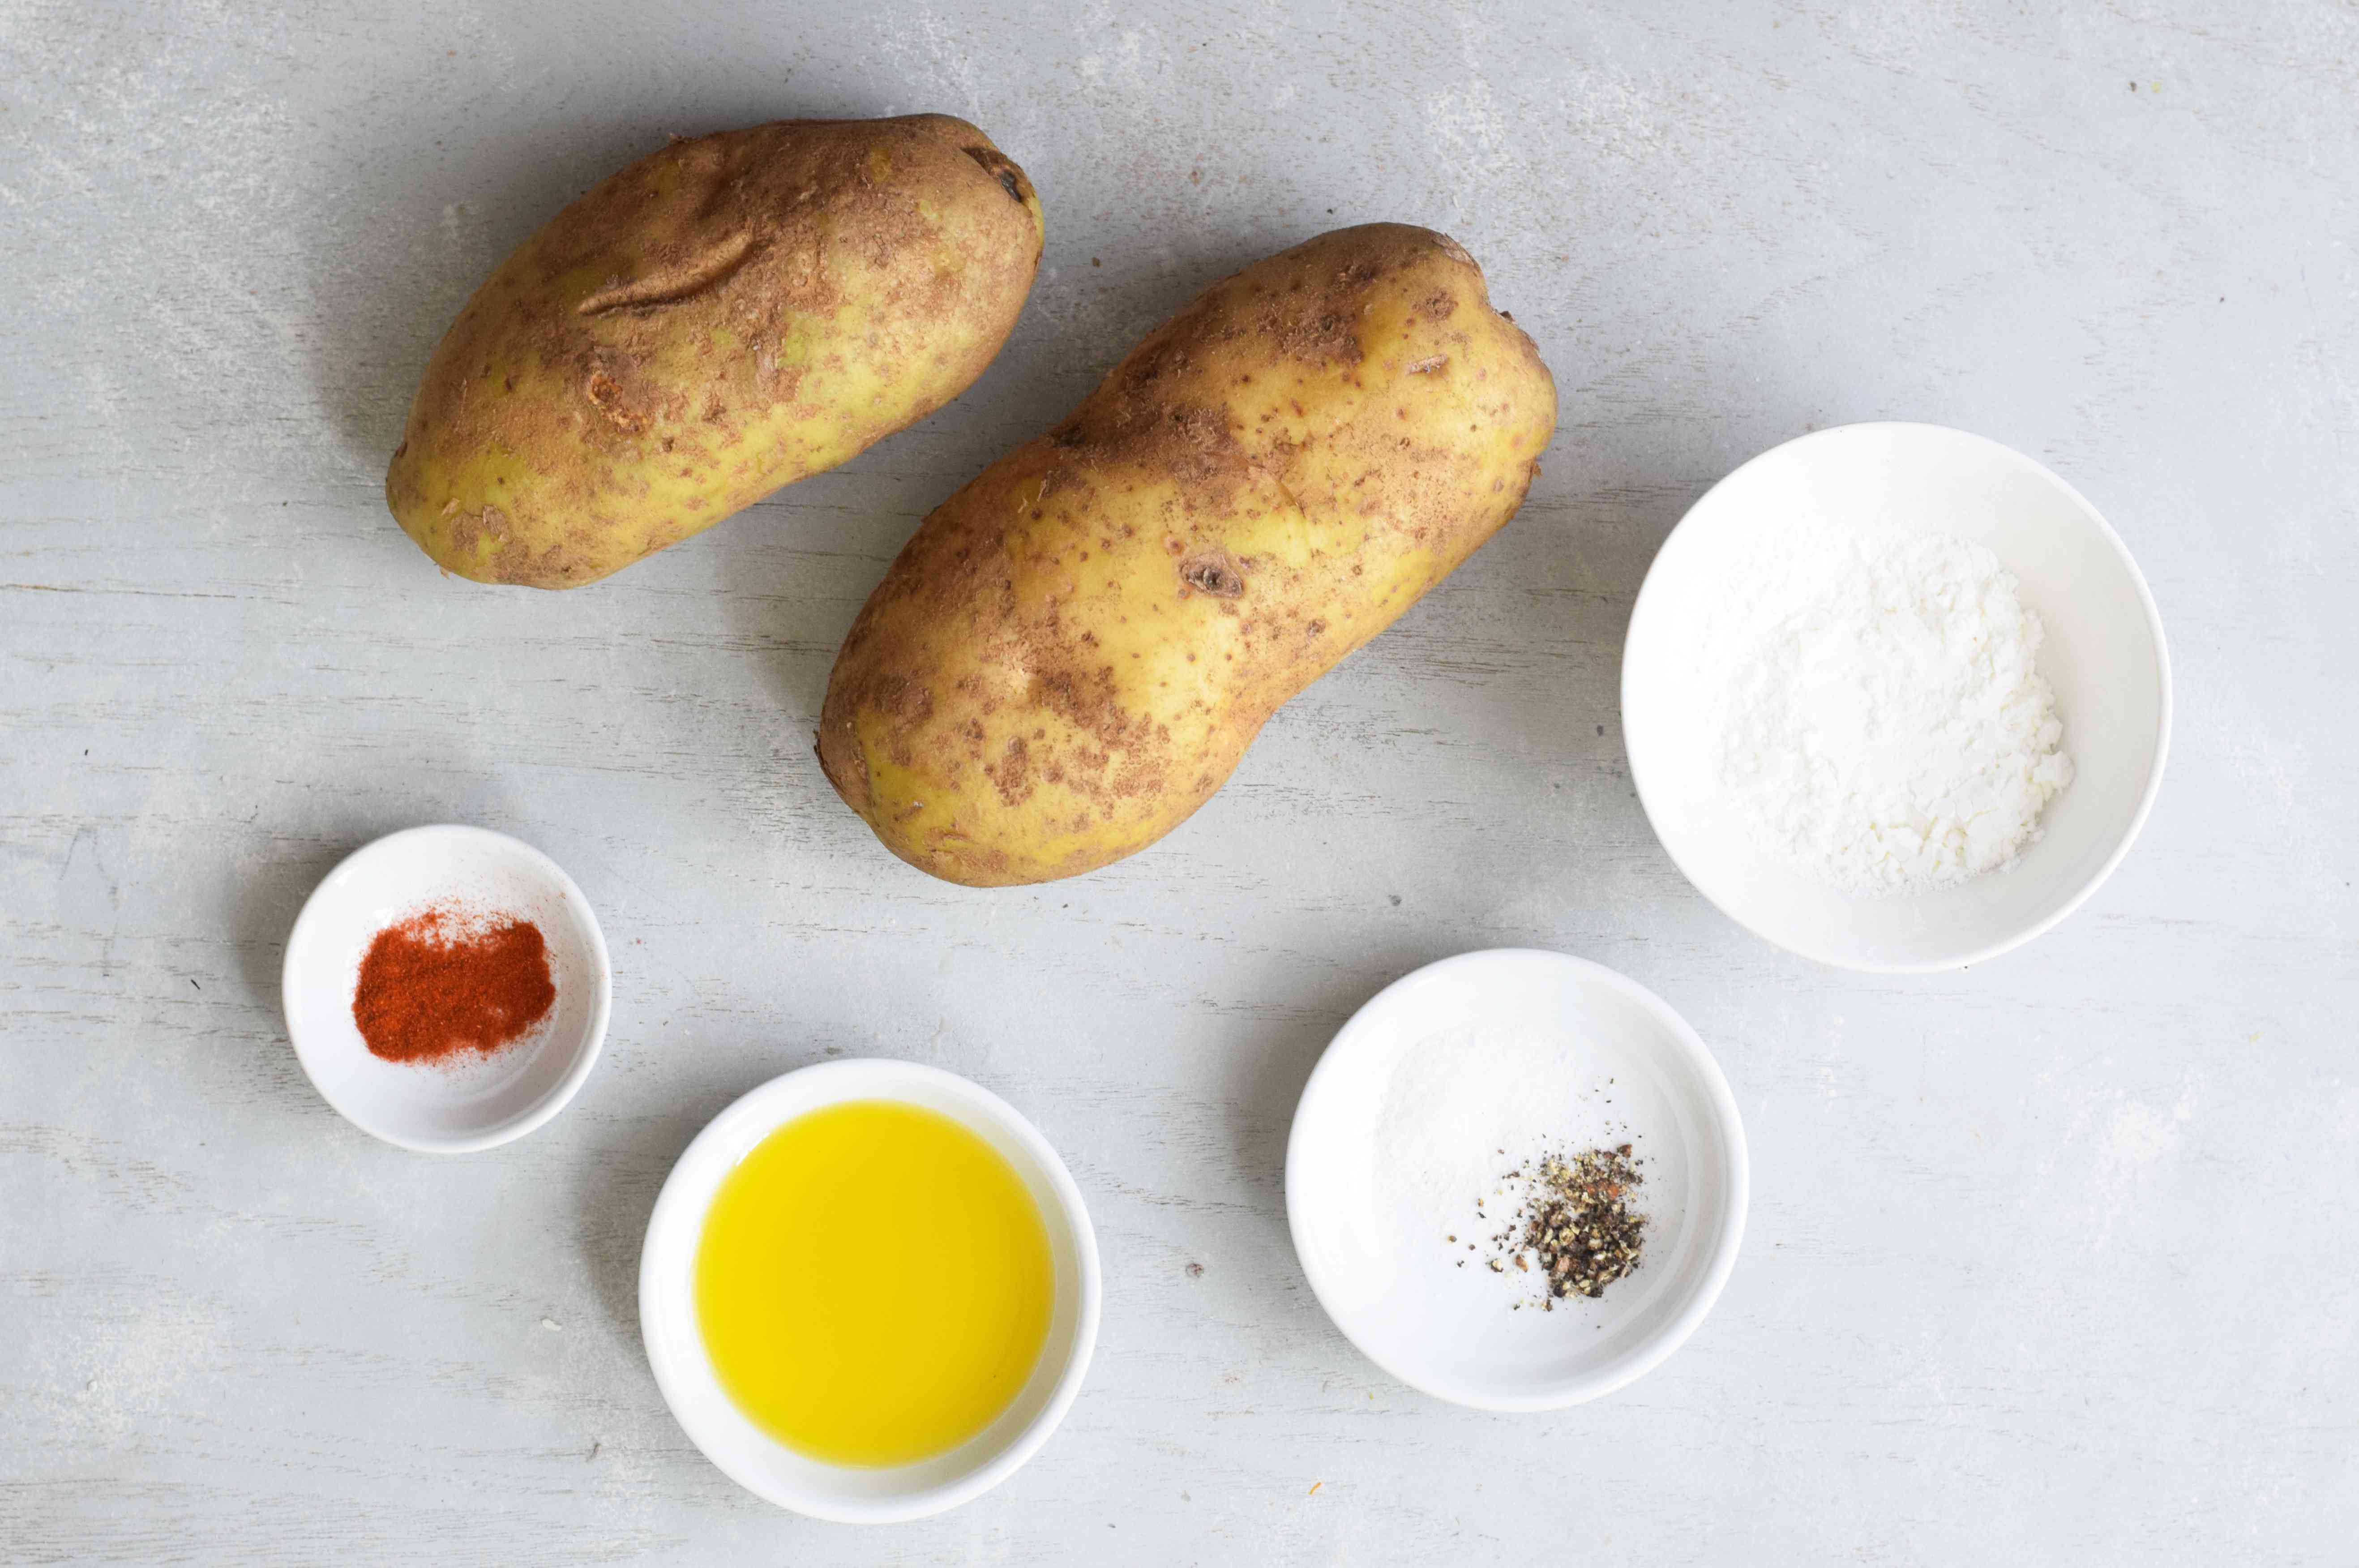 Gather the ingredients for Air Fryer French Fries